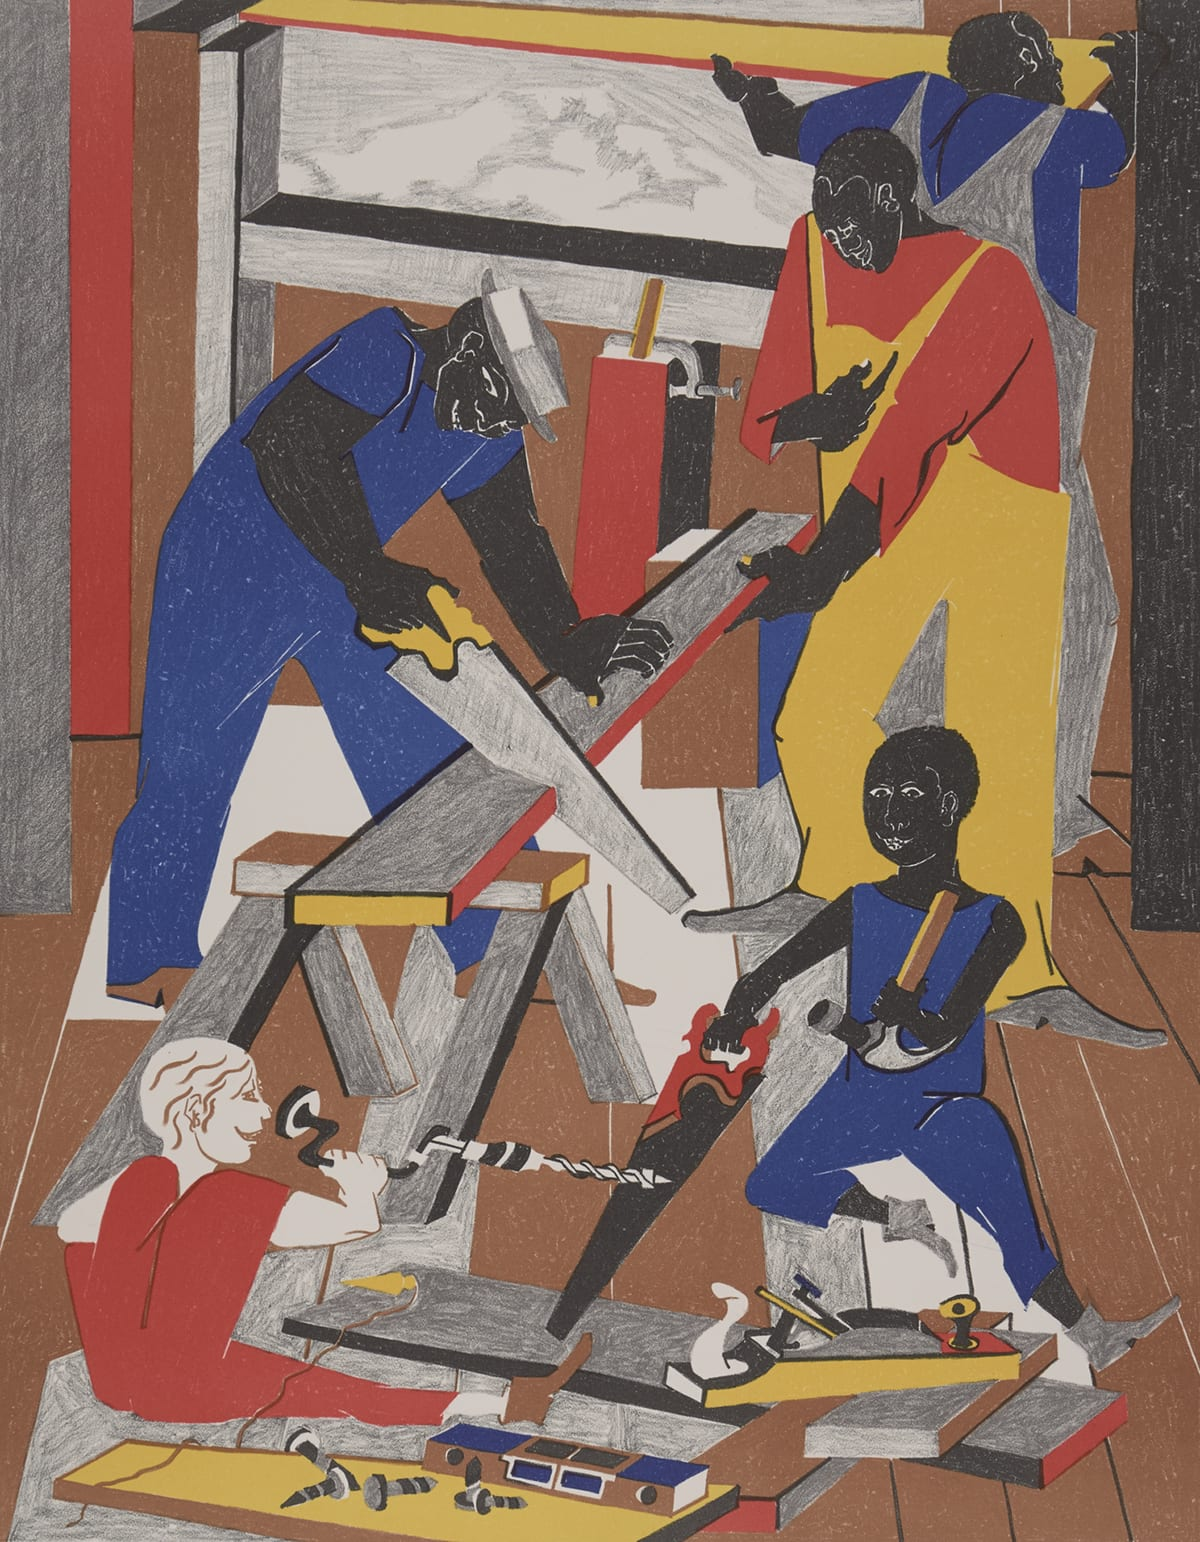 Workshop. Jacob Lawrence 1972. 22 1/4 in x 17 9/16 in. Color lithograph on paper. Portrait-oriented brightly colored lithograph reminiscent of Cubism showing five construction workers. A young white man with brown hair wearing red overalls without a shirt smiles while sitting on the ground, right leg outstretched, holding a wood hand crank brace with a drill bit. A yellow plumb bob with a brown string lays over his leg. To his right a young Black man with short black hair wears blue overalls without a shirt and uses a hand saw with his right hand while holding an upside down hammer with his left. Behind him two older Black men work on either side of a wood plank that is being supported by a saw horse. The man on the left has large muscular arms and wears blue overalls with a blue shirt and a white hat. He uses a hand saw with his right hand while resting his left hand on the board. On the right, a tall Black man with short dark hair wears yellow overalls with a long sleeve red shirt. He holds the board steady with his left hand while holding a small tool close to his chest in his right hand. Behind him a tall Black man with dark hair wears gray overalls with a blue shirt. He faces away from the others, lifting a yellow and red beam and placing it in what appears to be a window frame. Through the window frame, gray landscape can be seen. Brown wood plank floors fill the frame and wood boards, screws, a blue level, and other metal tools are stacked on the floor at the bottom of the frame.